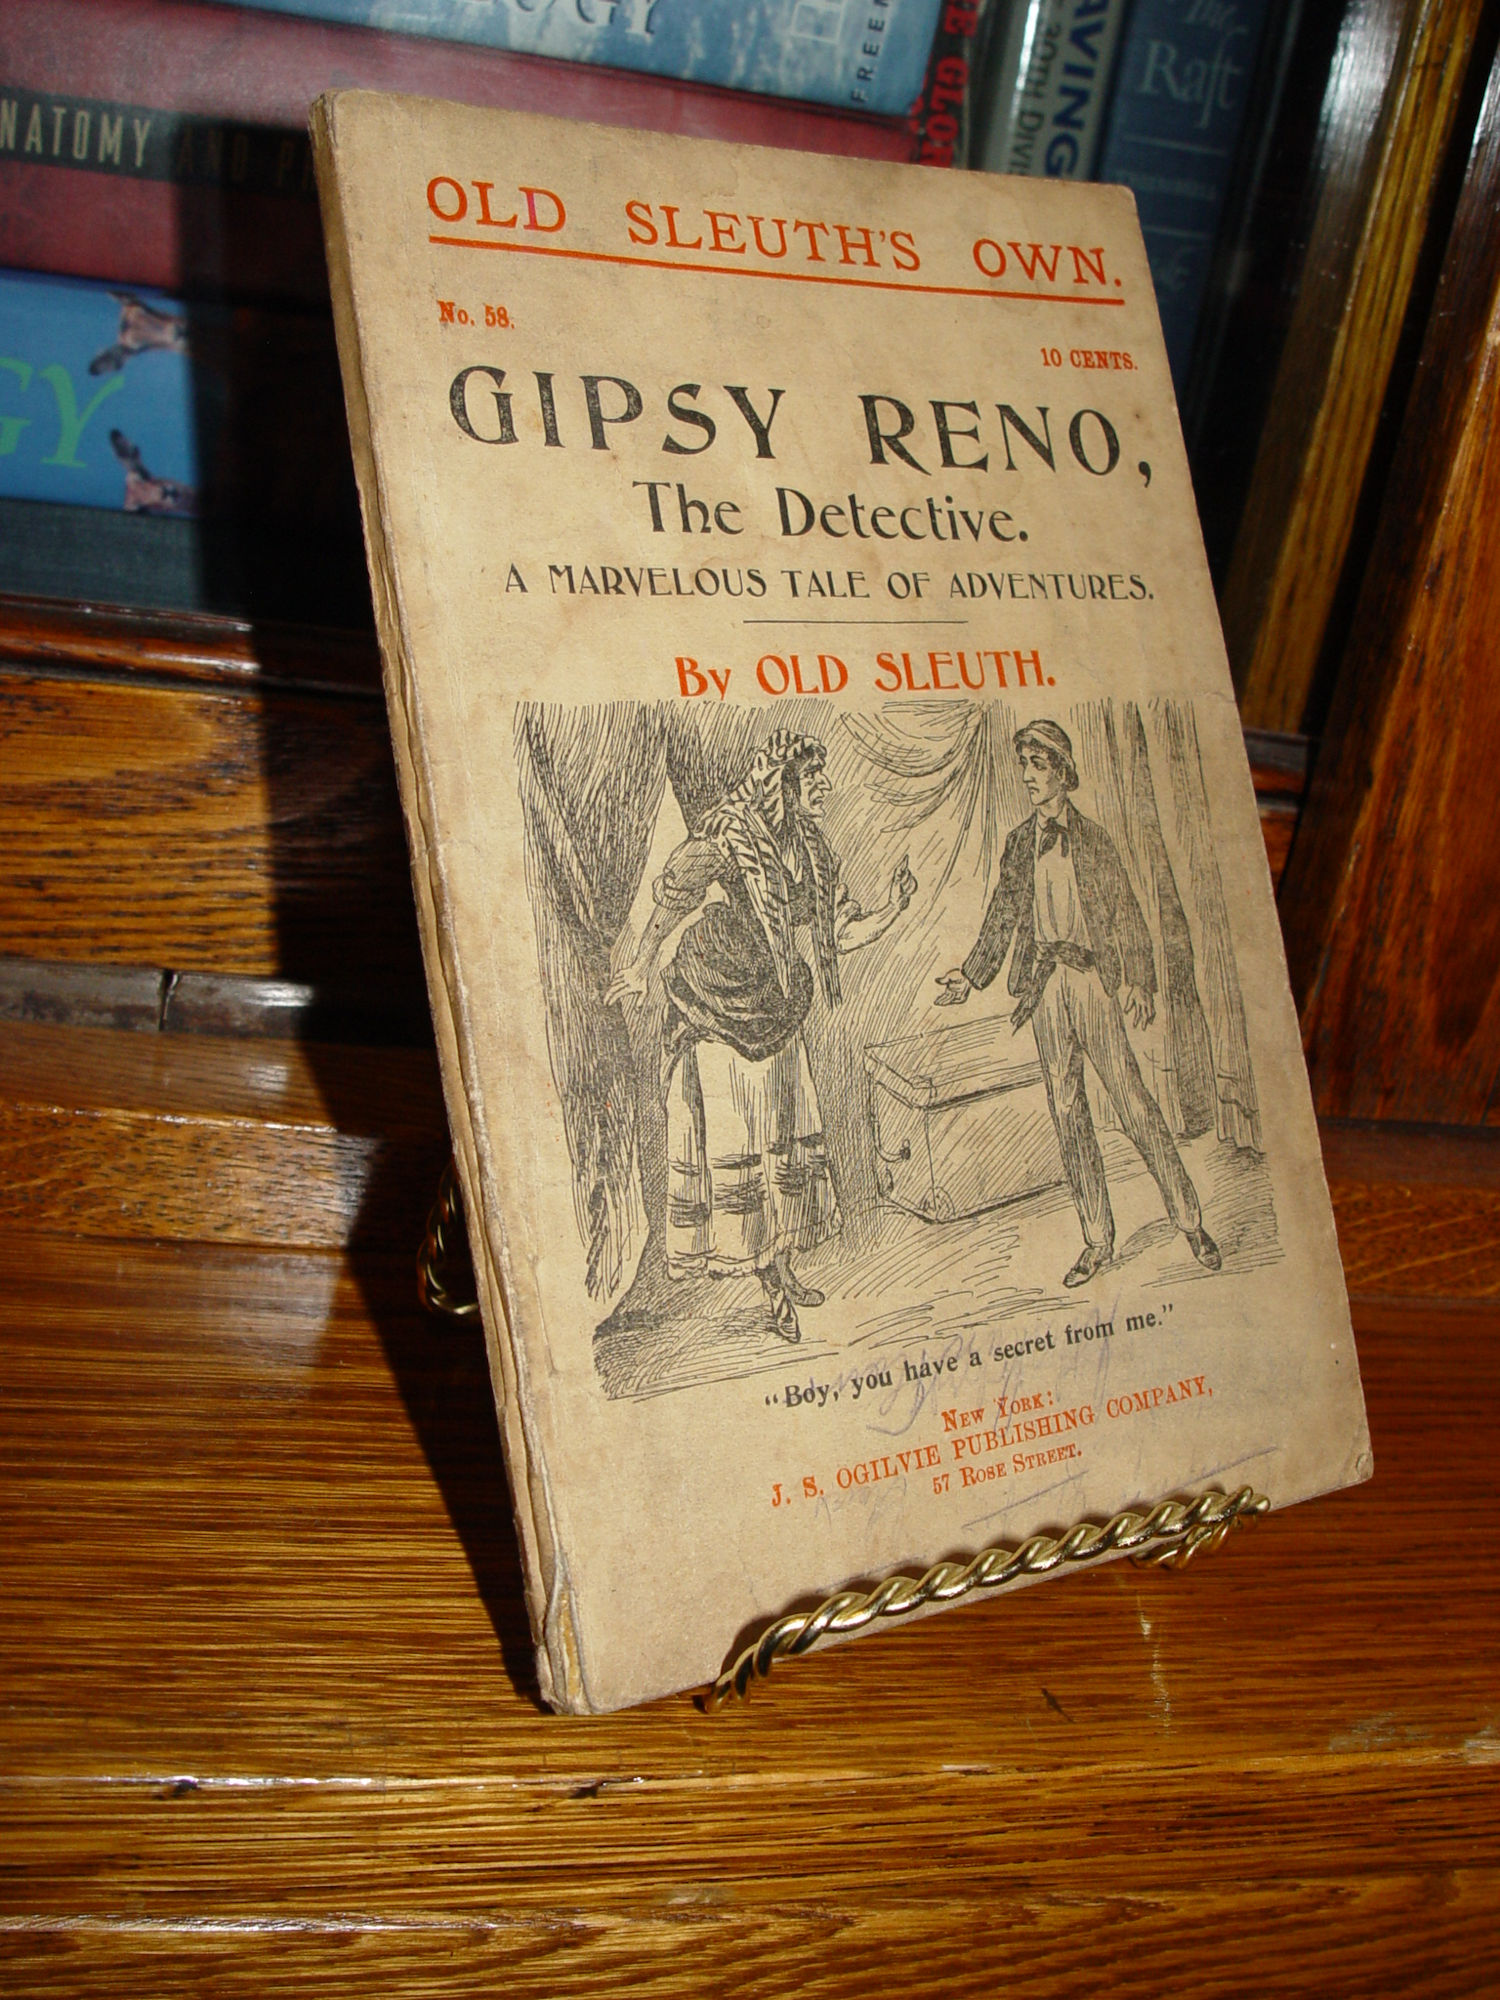 No 58 -- Gipsy Reno, The                                         Detective. A Marvelous Tale of                                         Adventures by Old Sleuth                                         Published by J. S. Ogilvie                                         Publishing Company 1896